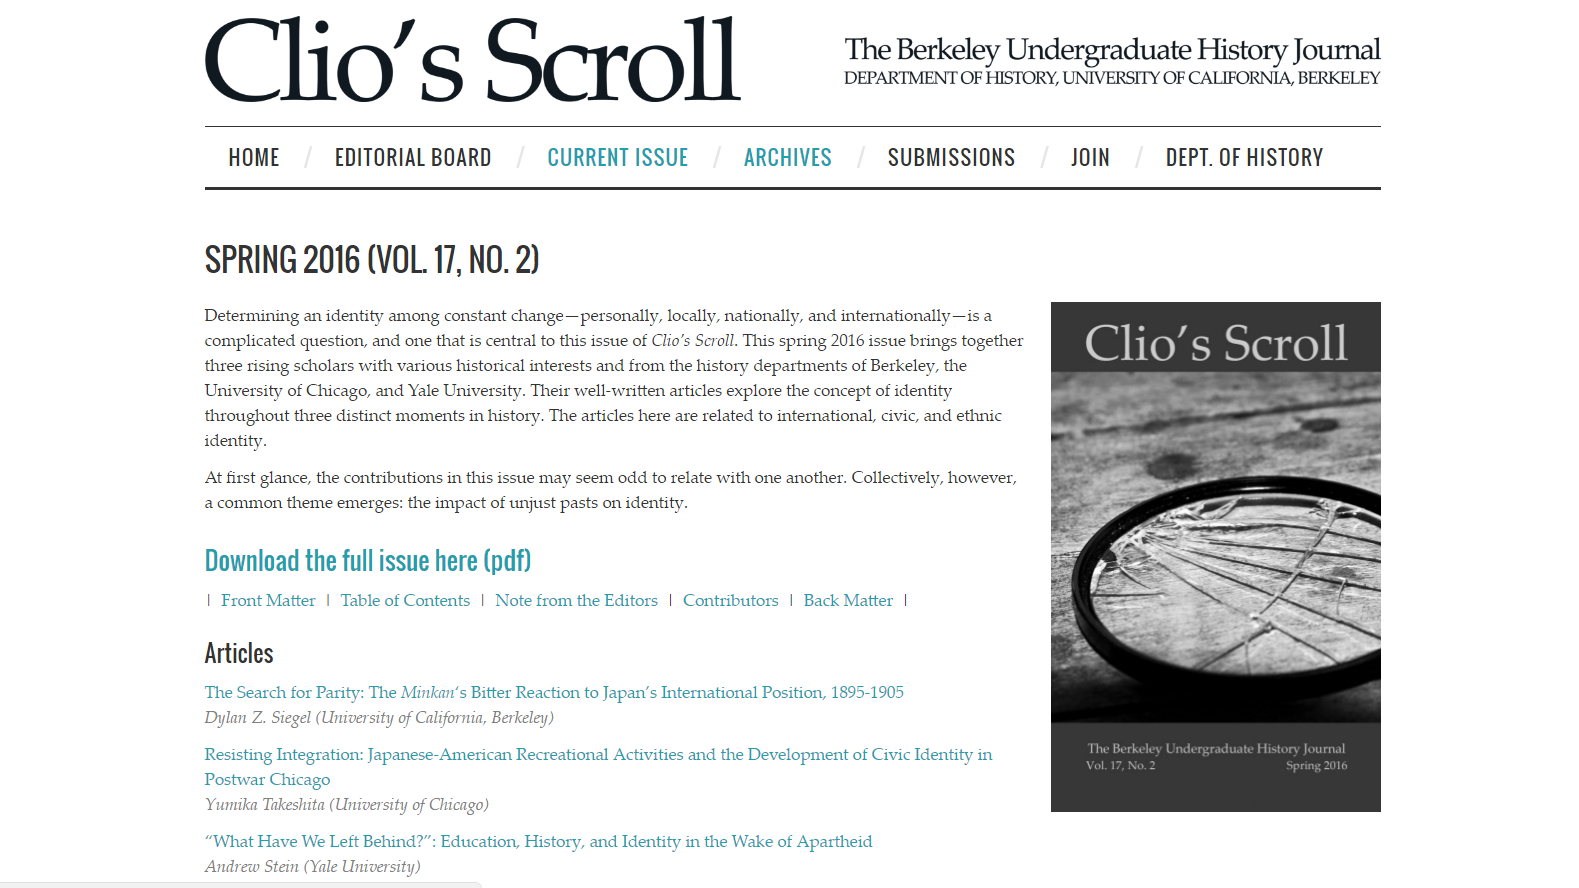 Clio's Scroll webpage